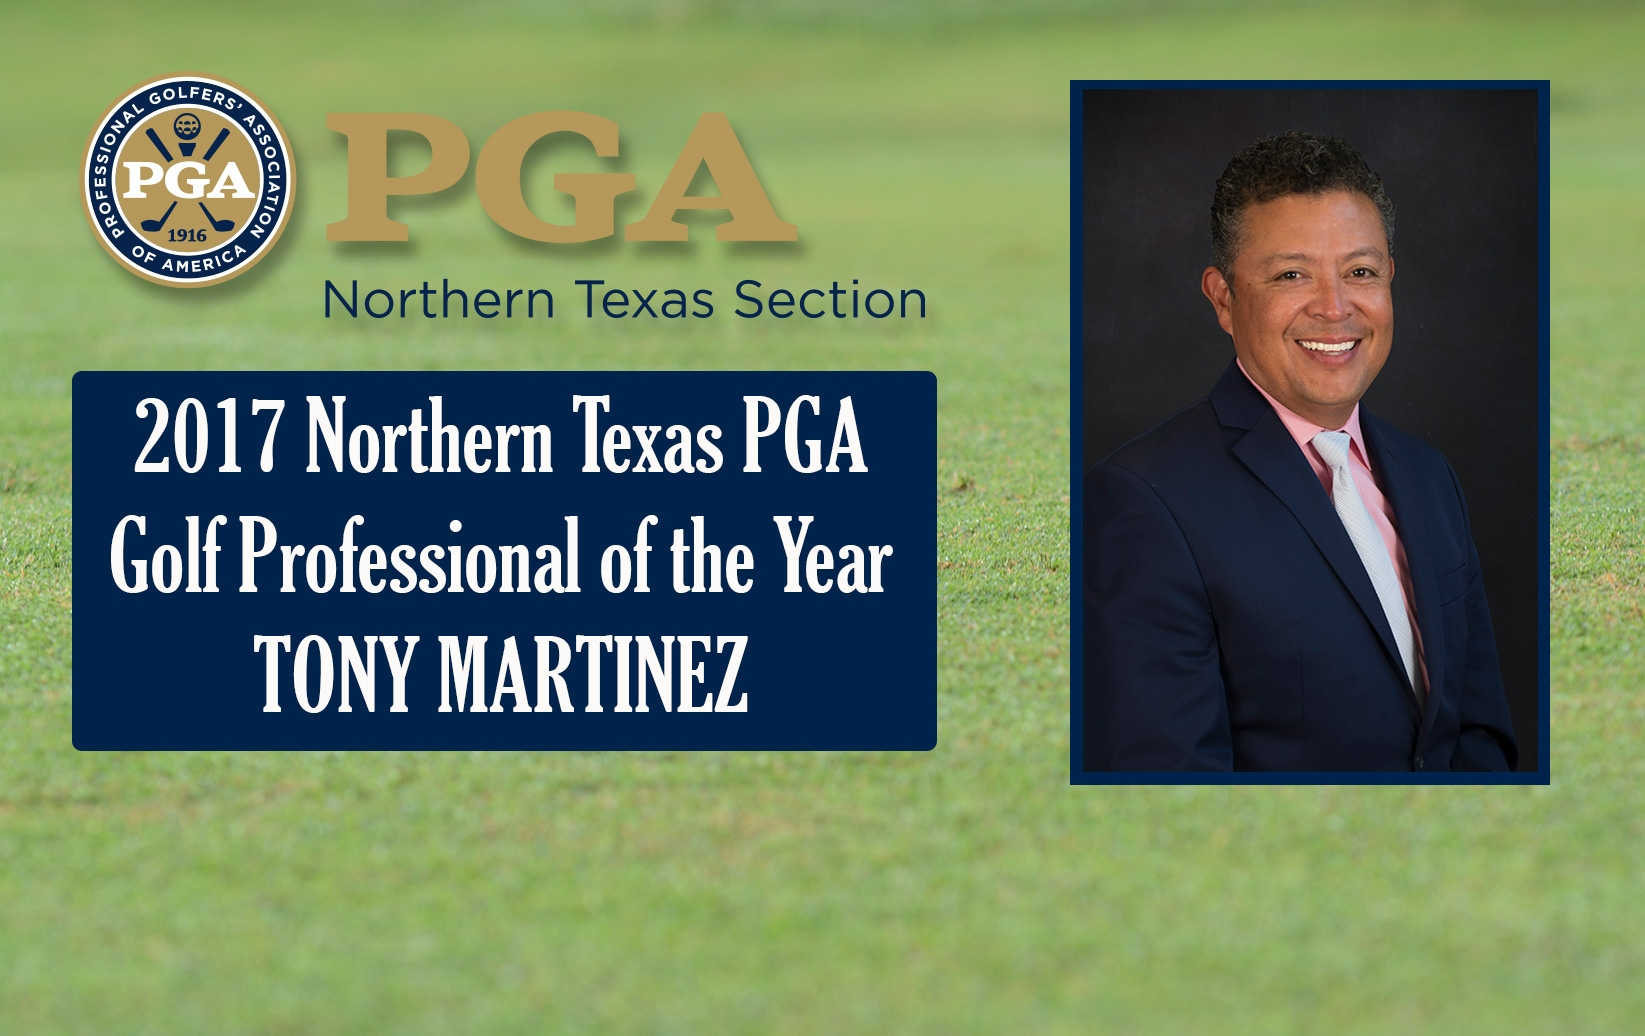 2017 Northern Texas PGA Section Award Winners Announced, Tony Martinez Named Golf Professional of the Year